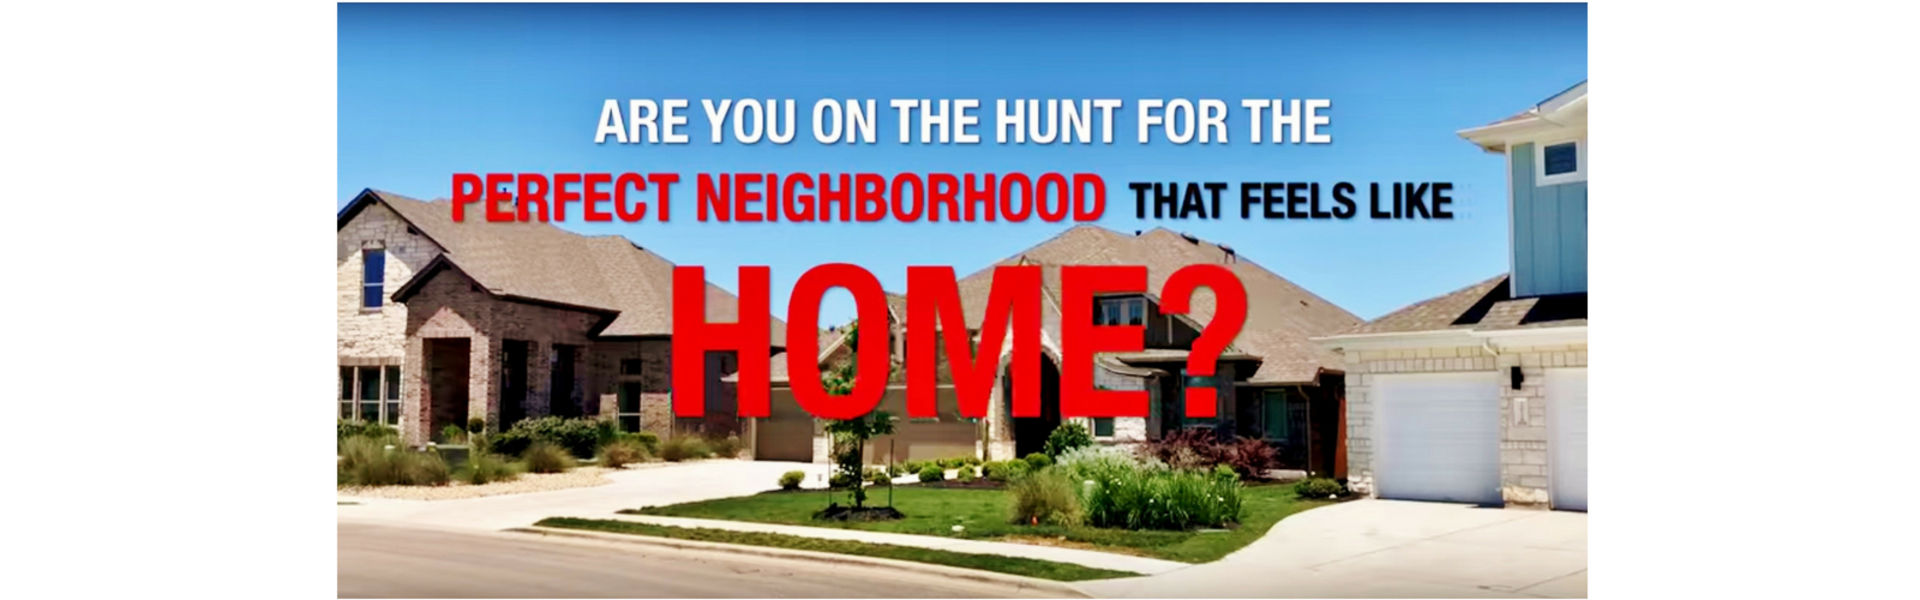 ON THE HUNT FOR YOUR PERFECT NEIGHBORHOOD?